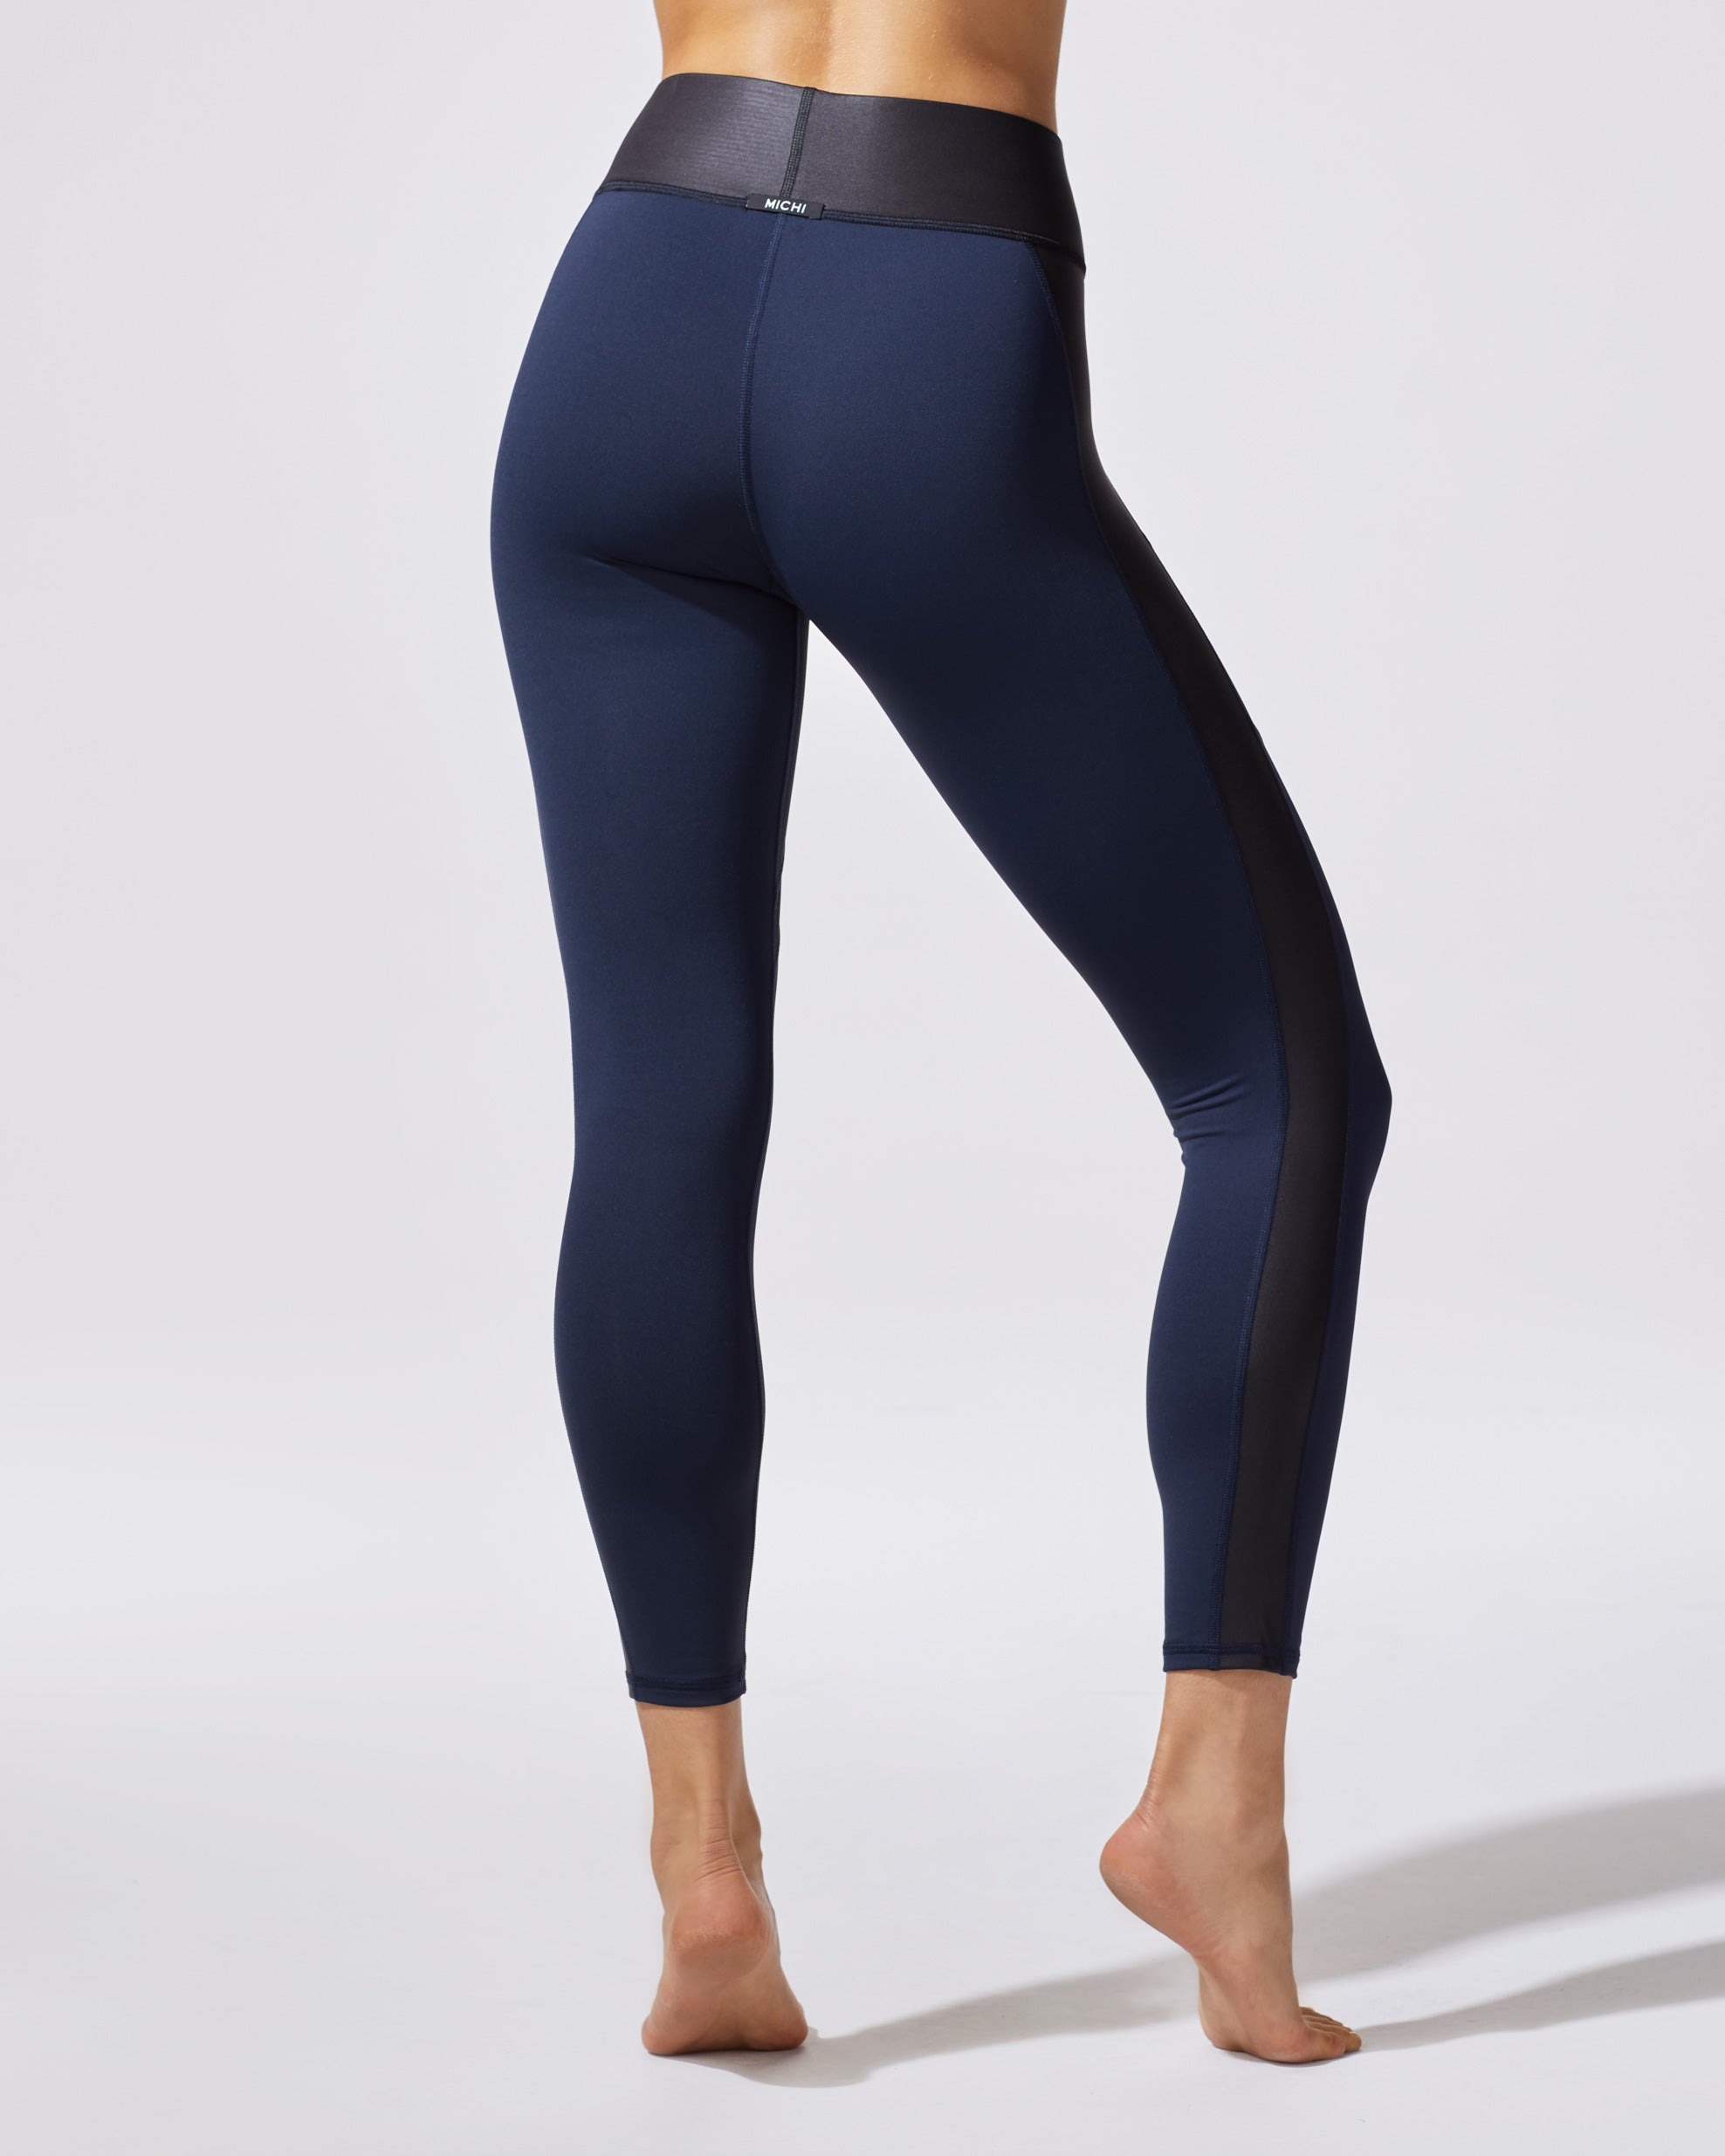 Mist Legging - Navy